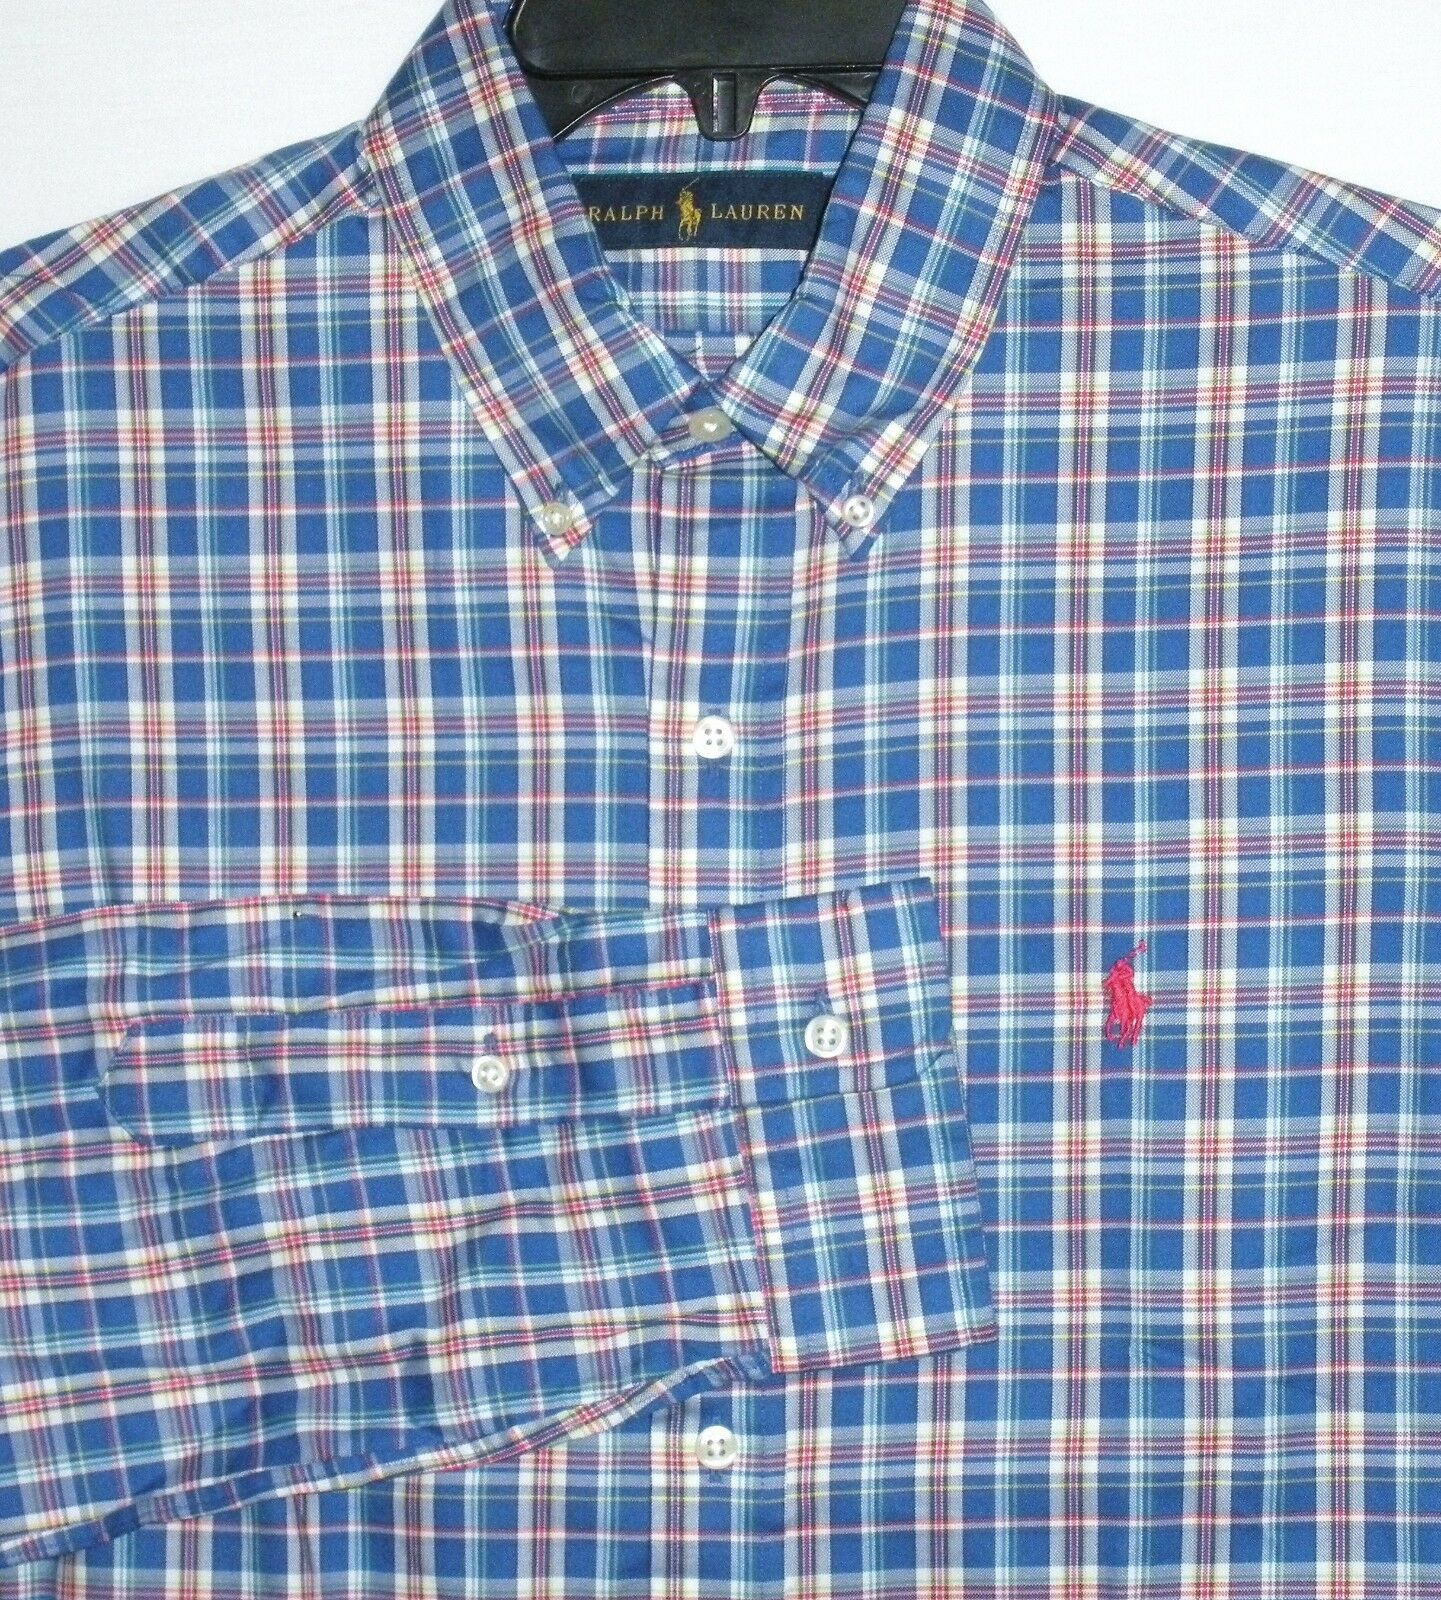 NWT MSRP  - Men's RALPH LAUREN 100% Cotton Plaid L S Shirt, Red   bluee Multi